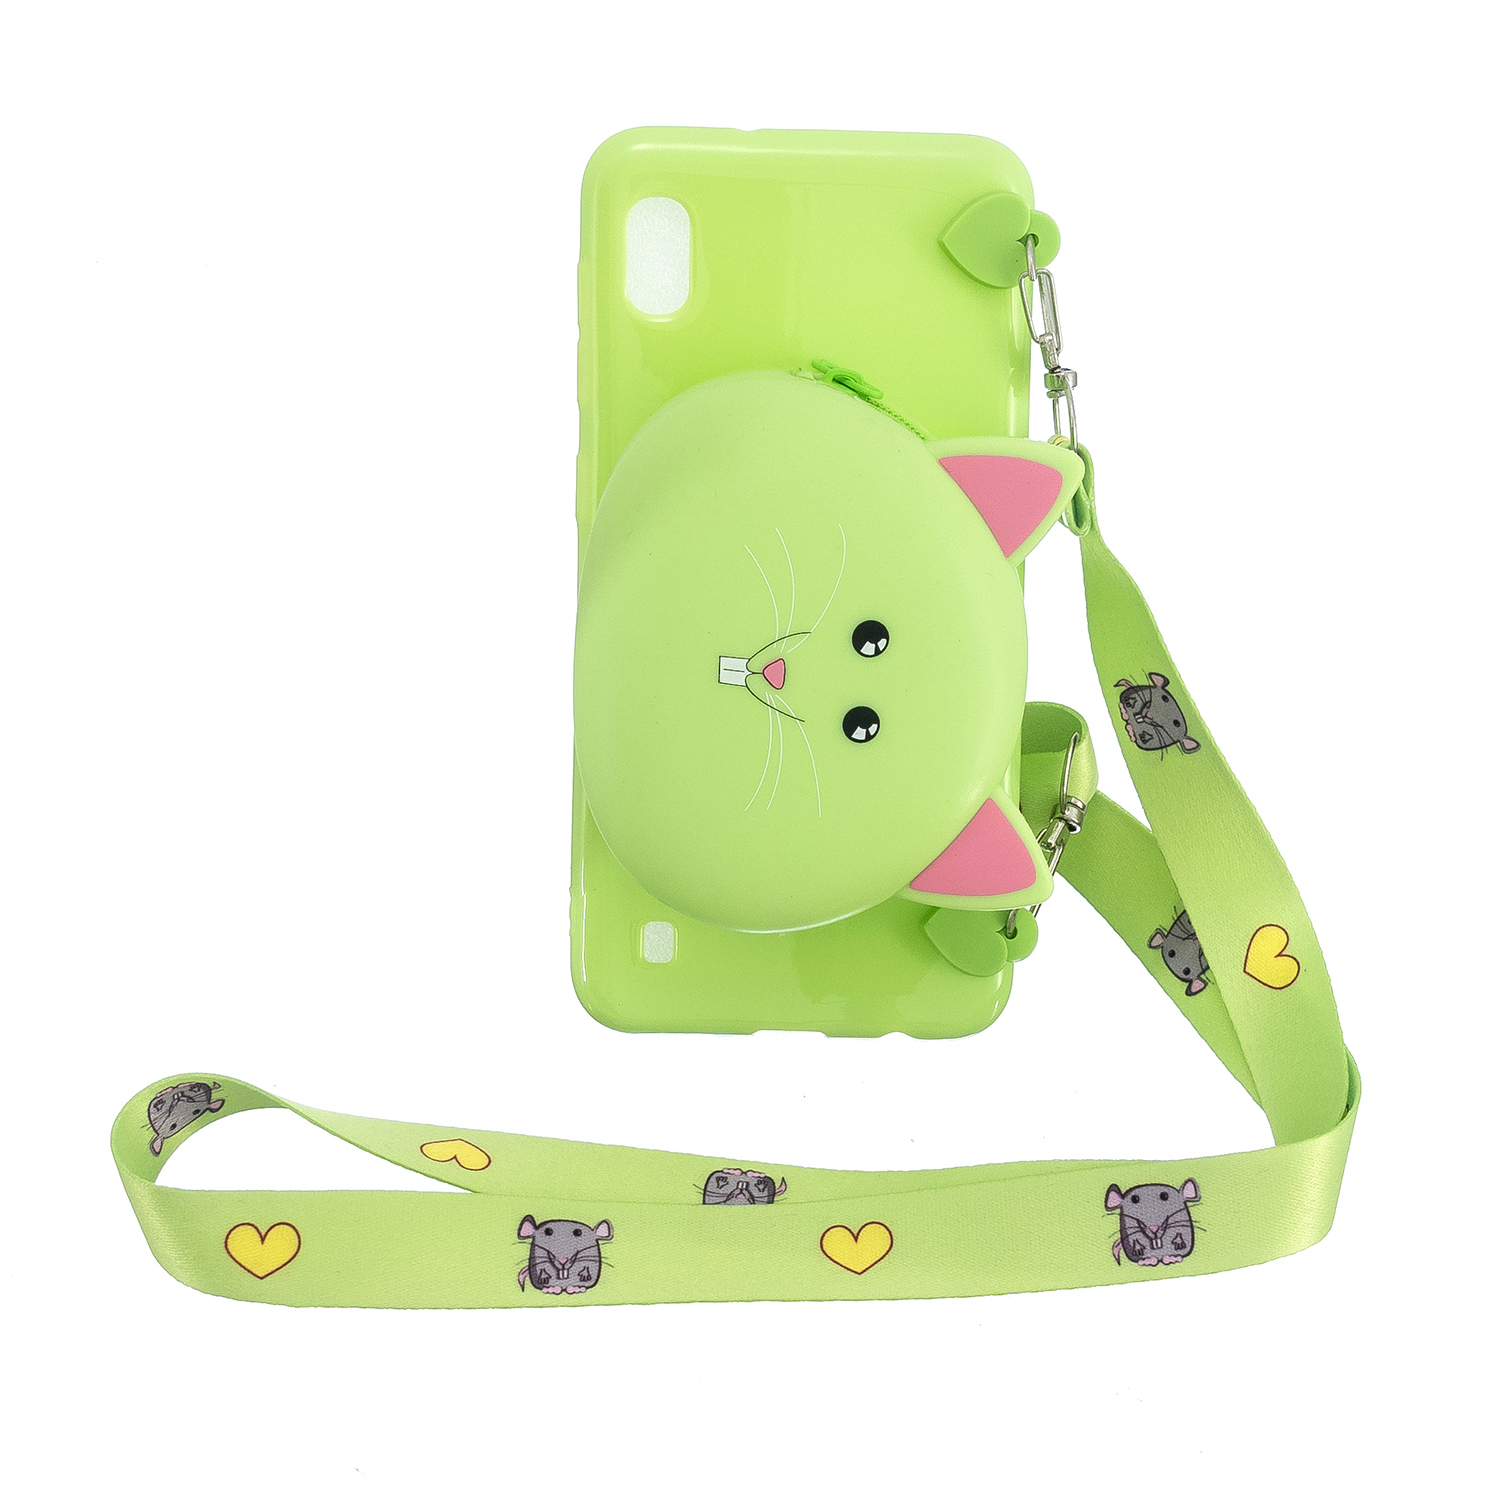 For Samsung A10/A20/A30 Case Mobile Phone Shell Shockproof TPU Cellphone Cover with Cartoon Cat Pig Panda Coin Purse Lovely Shoulder Starp  Green